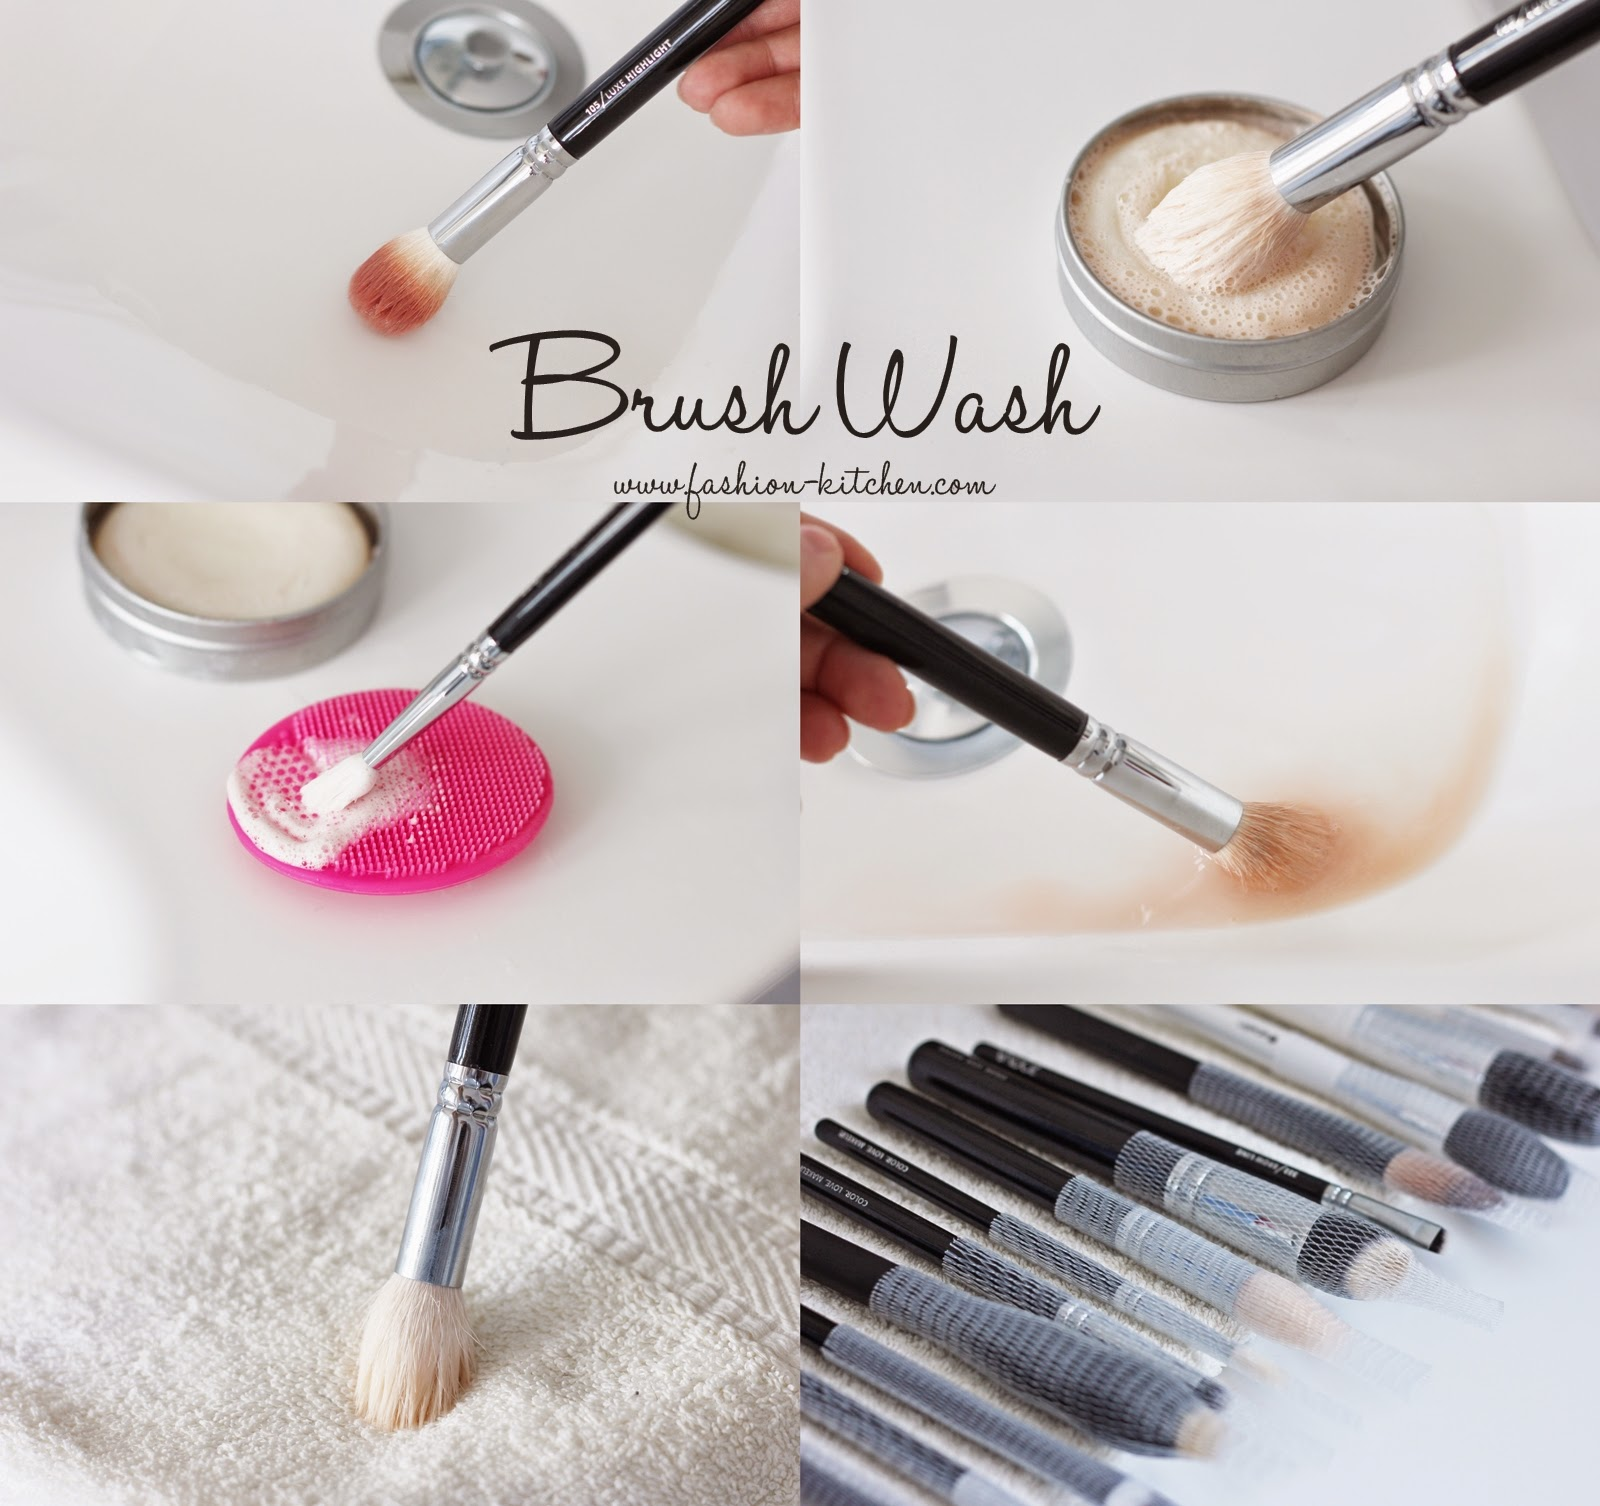 Brush Wash Wie Du Deine Make Up Pinsel Richtig Reinigst Fashion